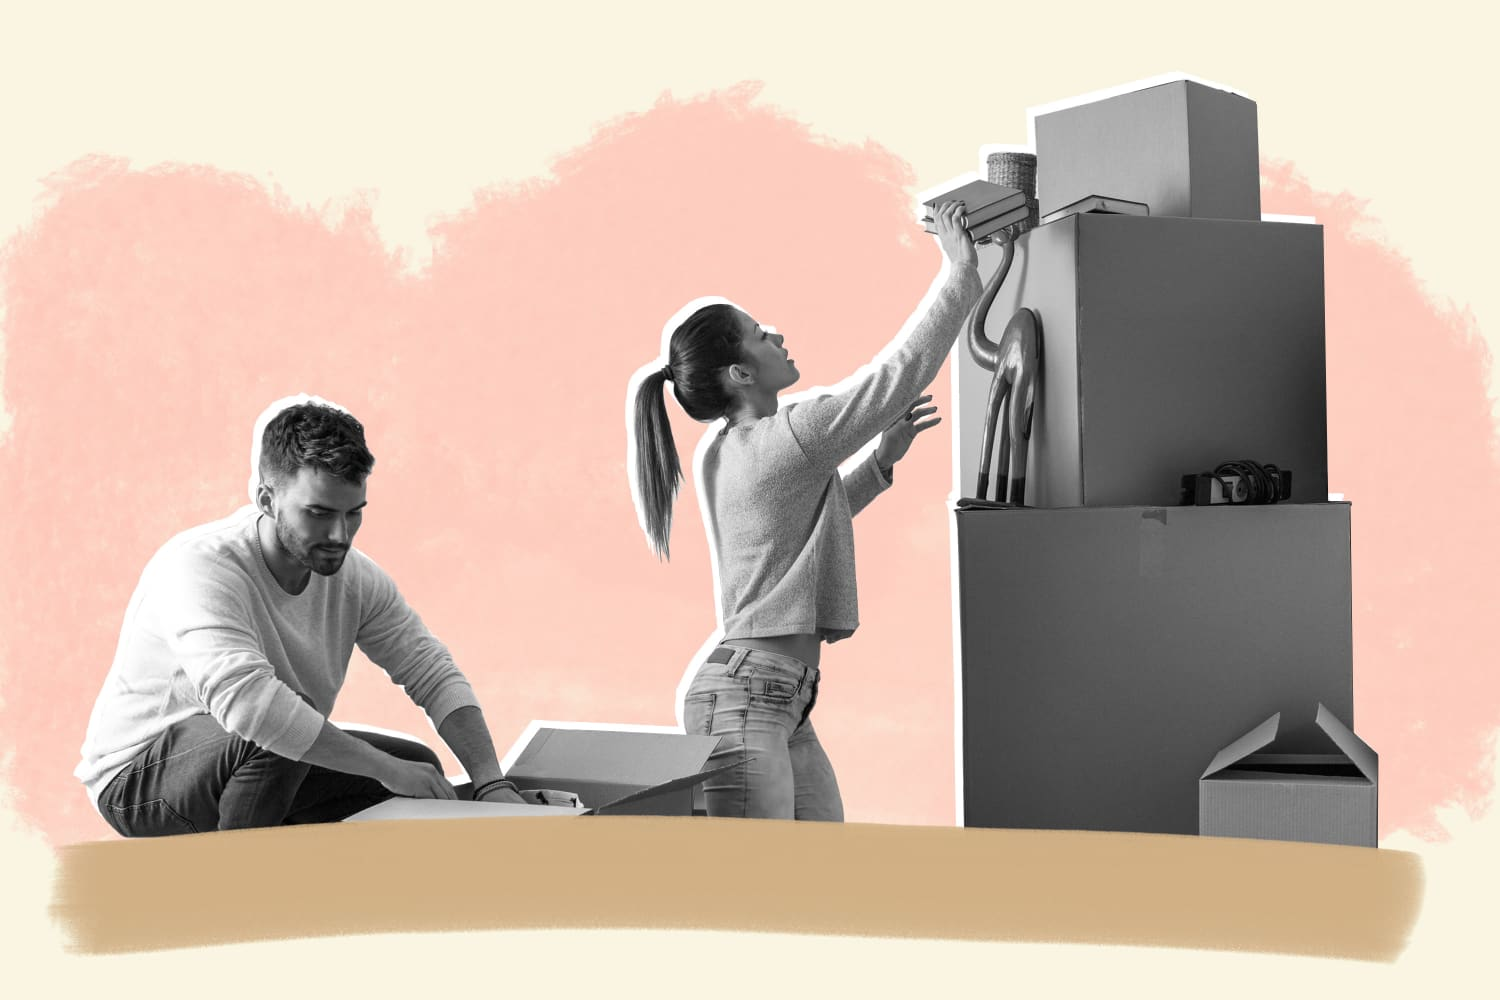 How to Be a Good Friend When Your Friend is Moving